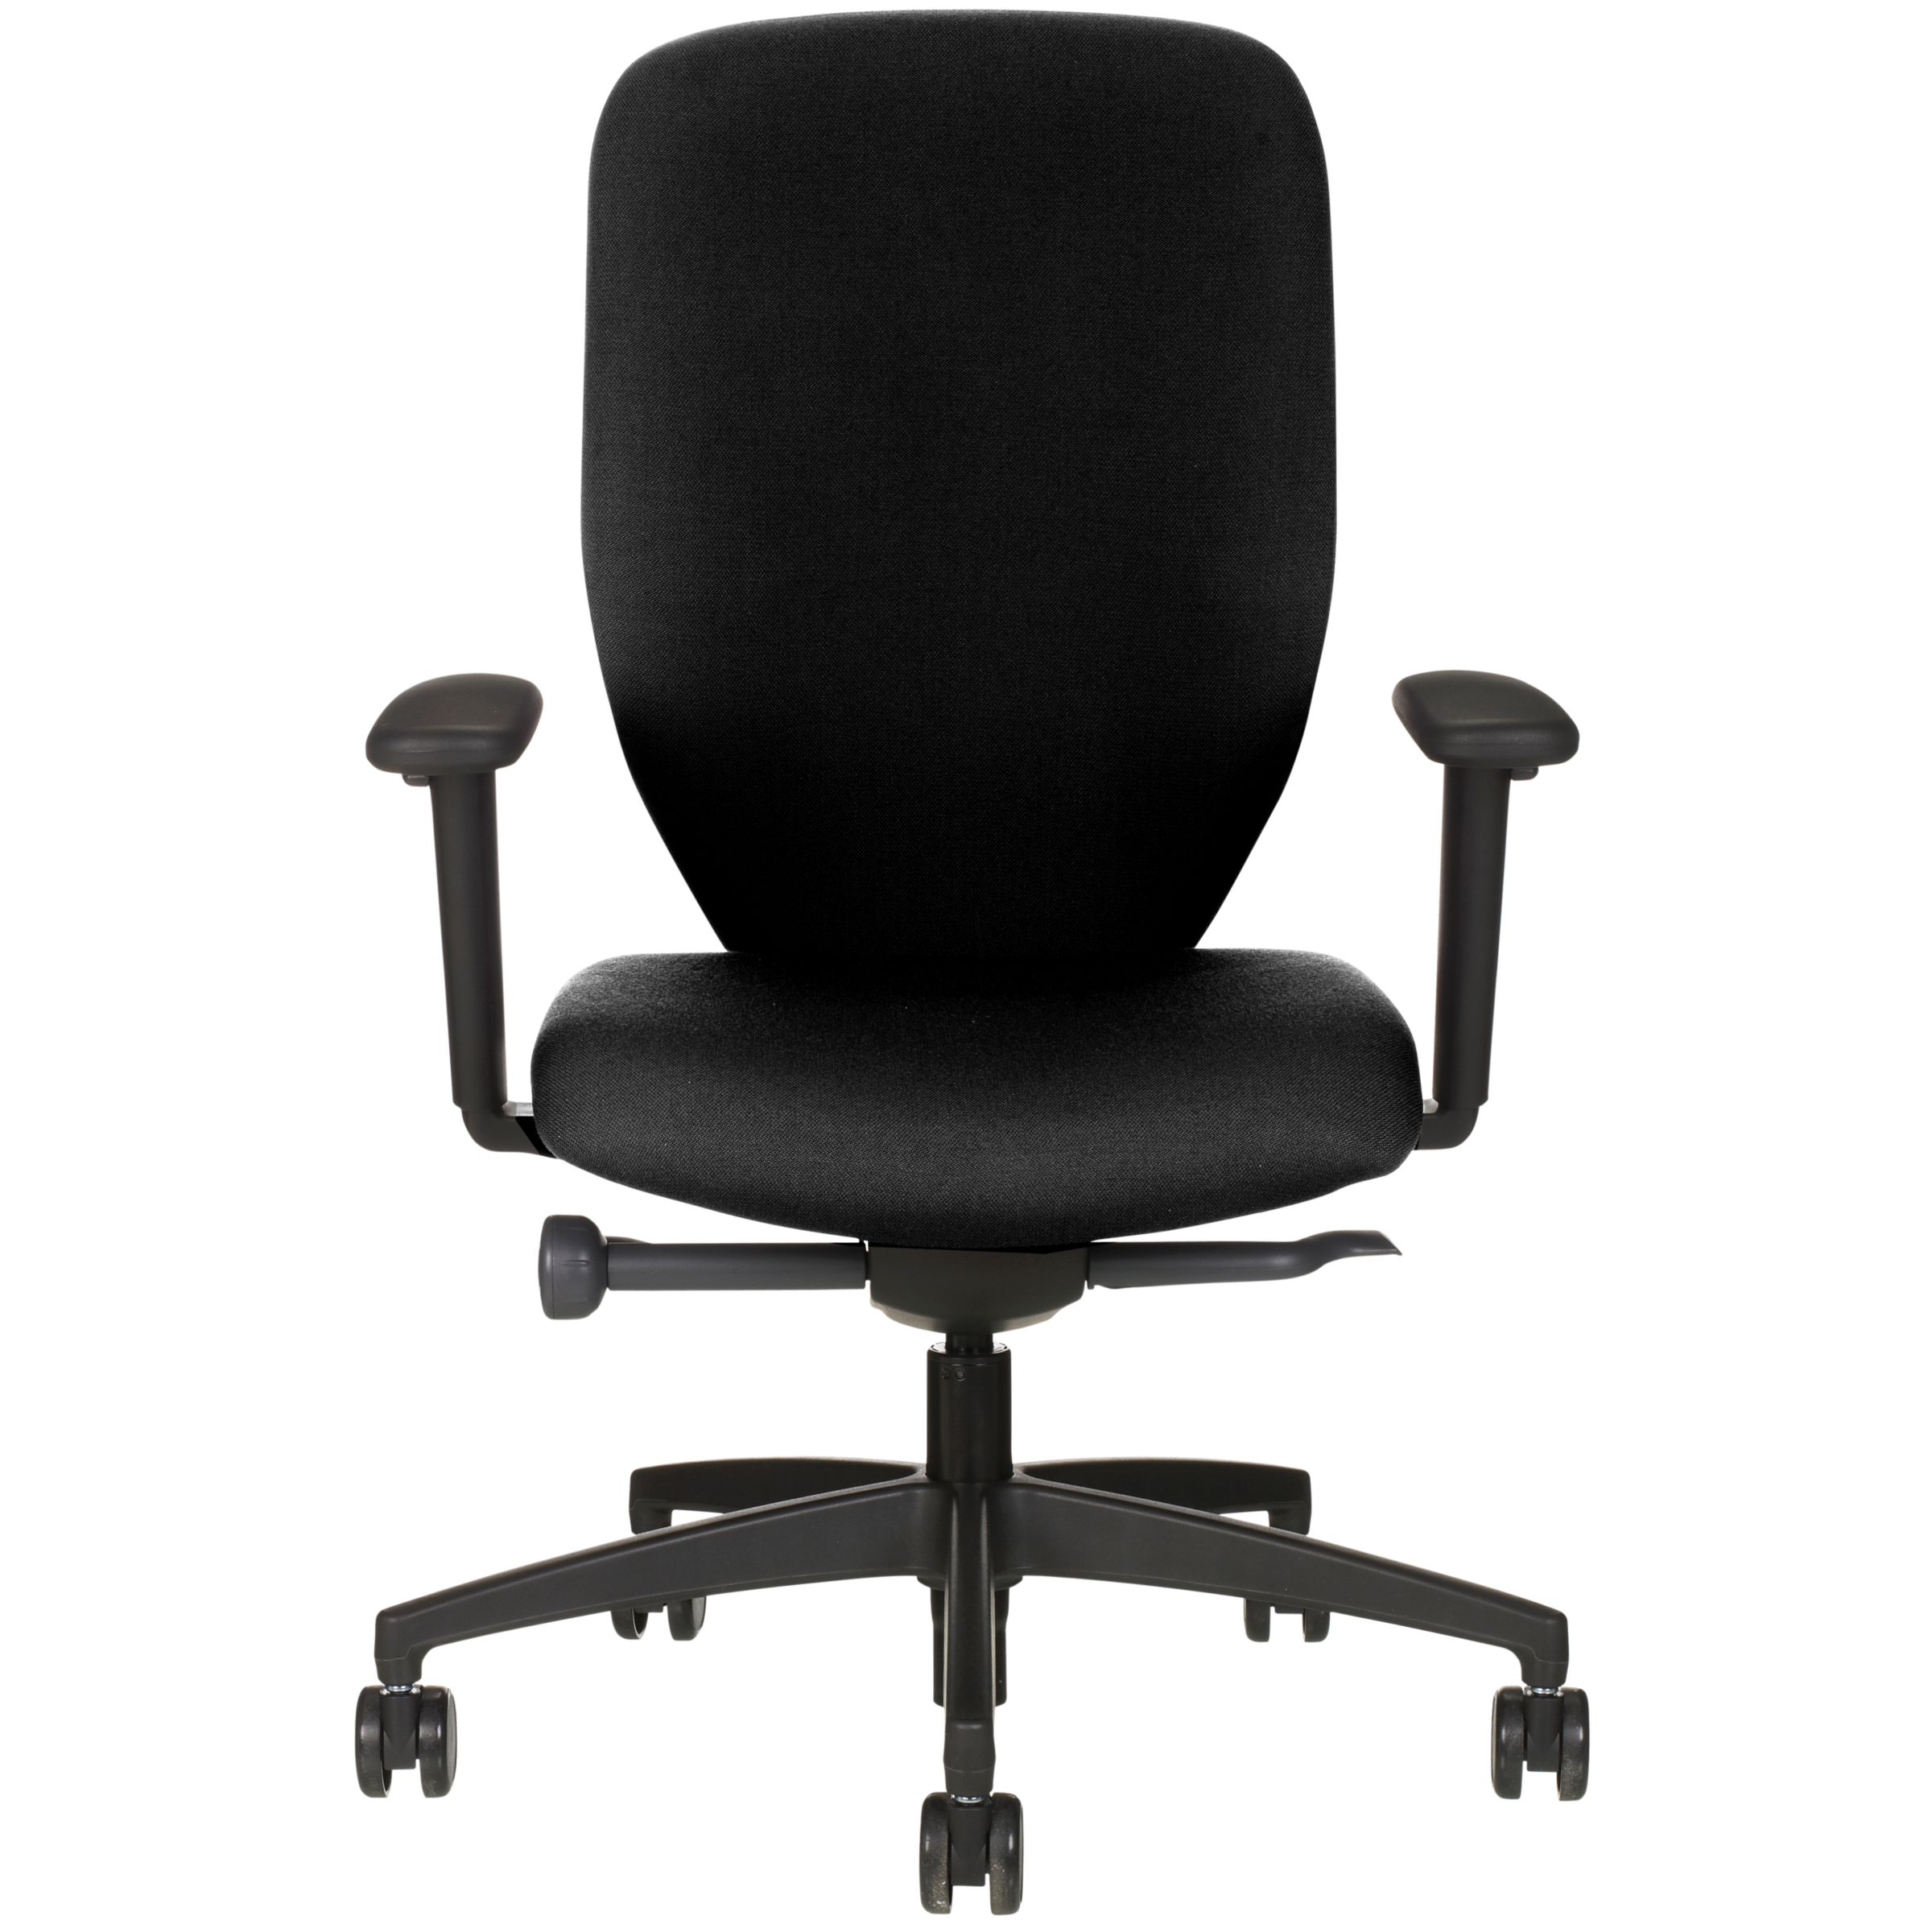 Boss Design Lily Office Chair, Inhale